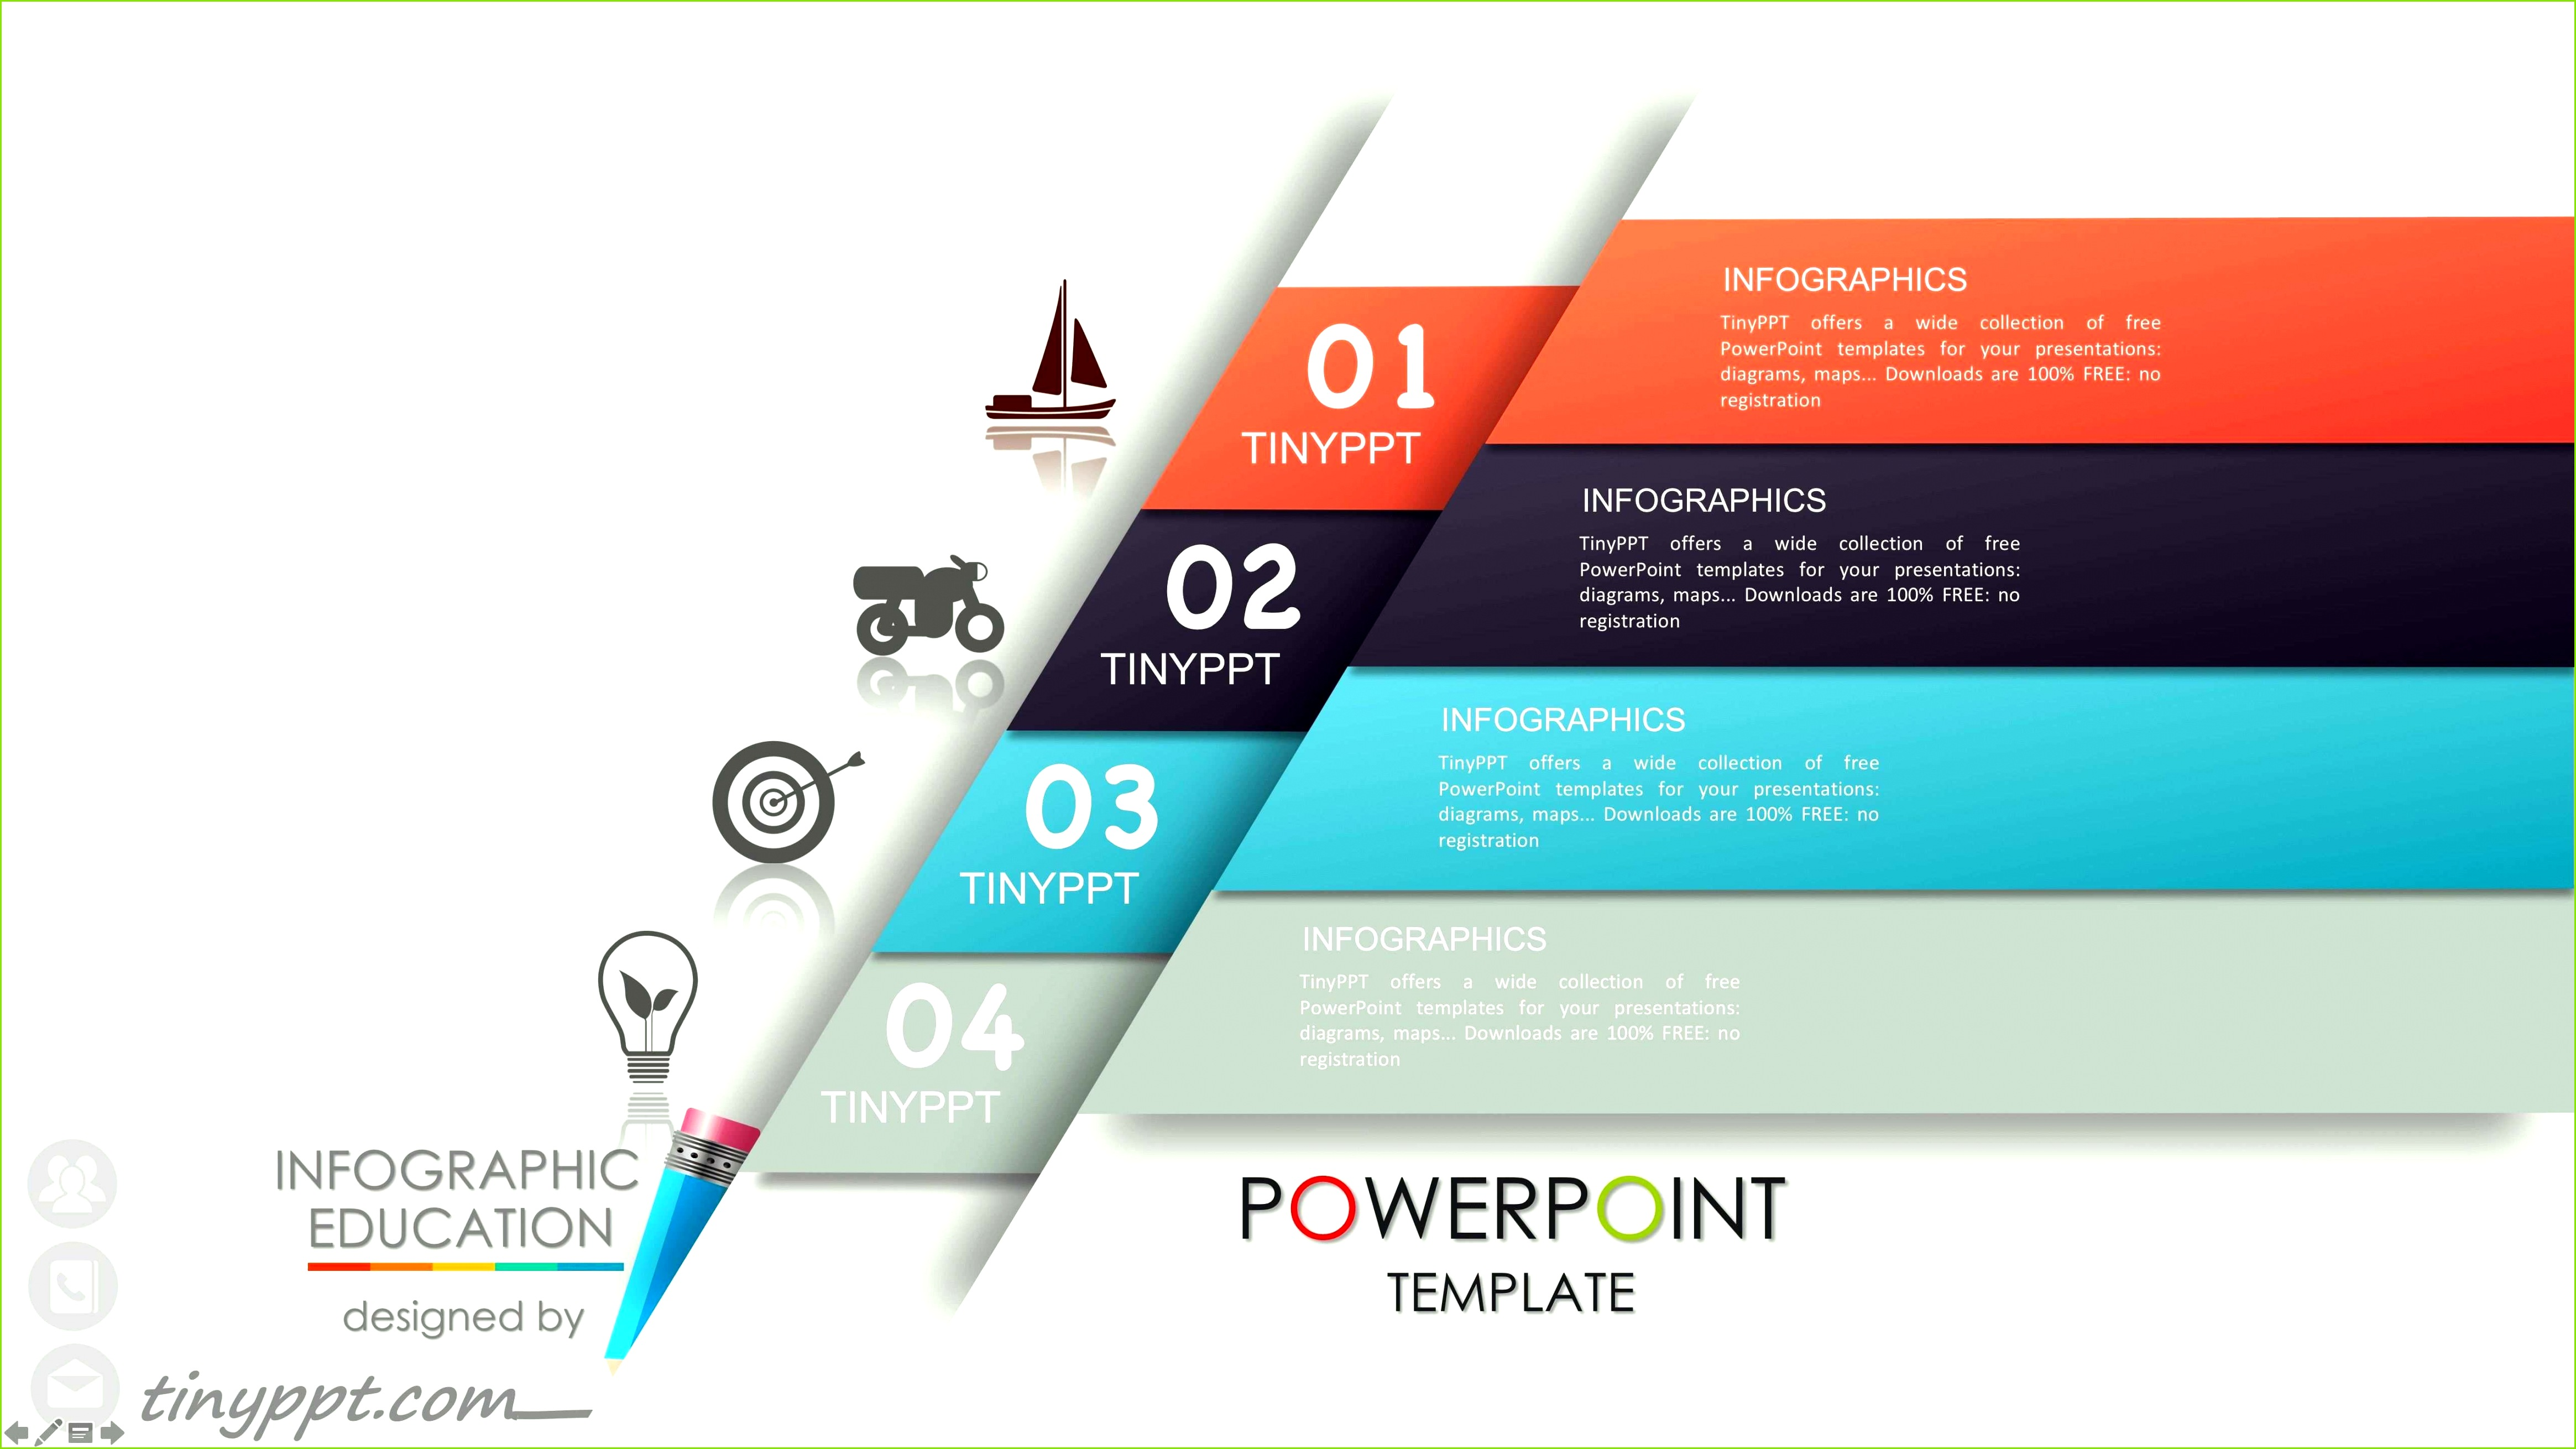 Ppt Template Business Fresh Powerpoint Background Design Powerpoint Templates for 2007 Ppt 0d Latest Templates Free